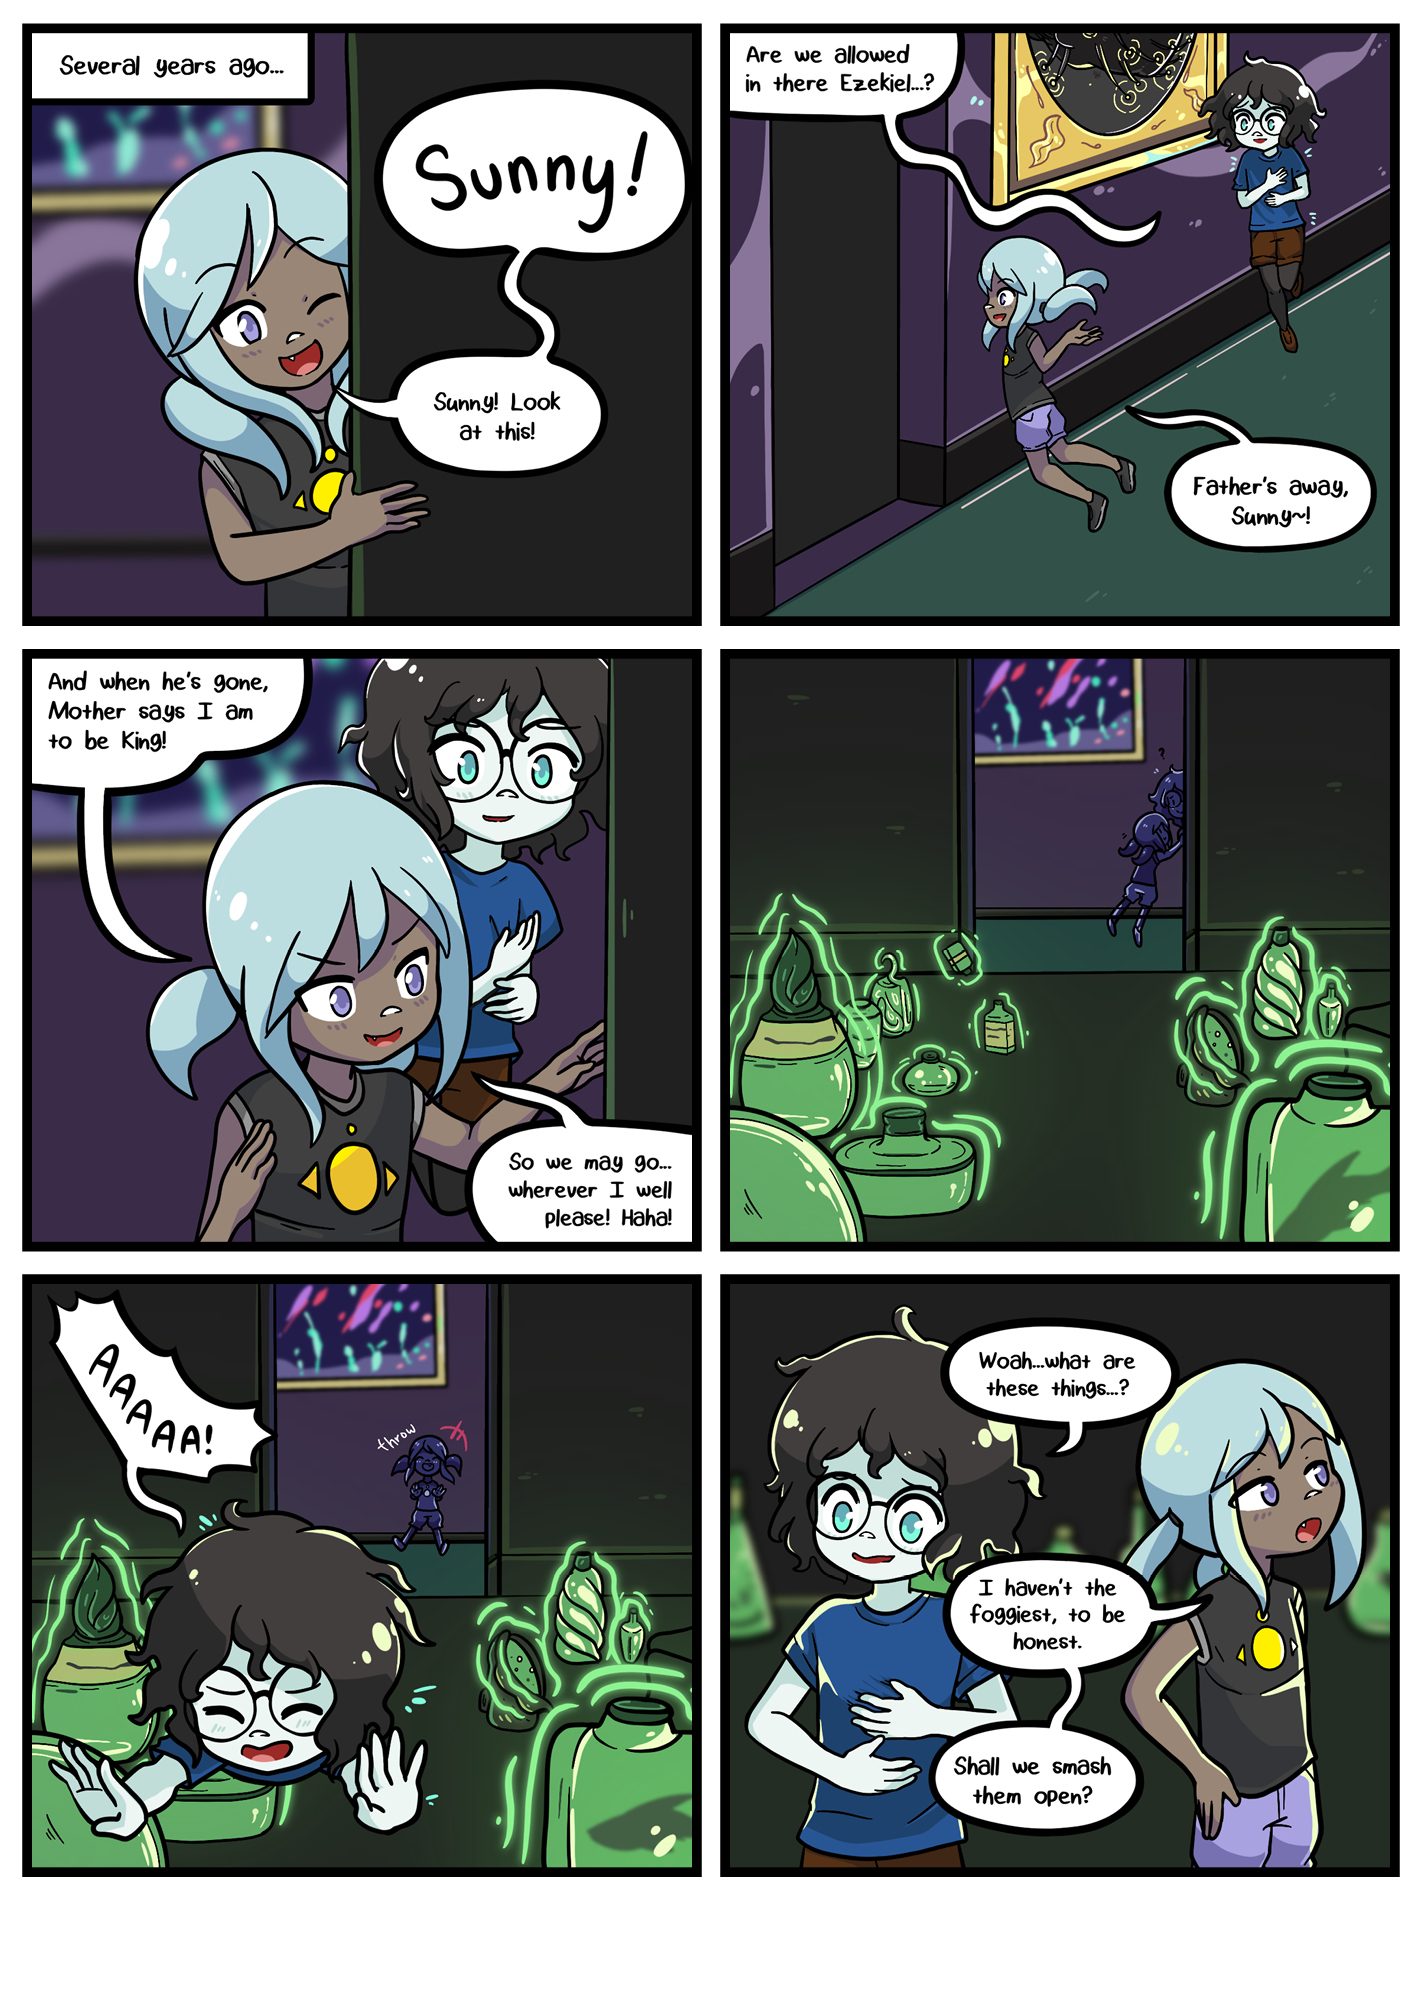 Seasick the underwater adventure comic, chapter 2 page 58 full